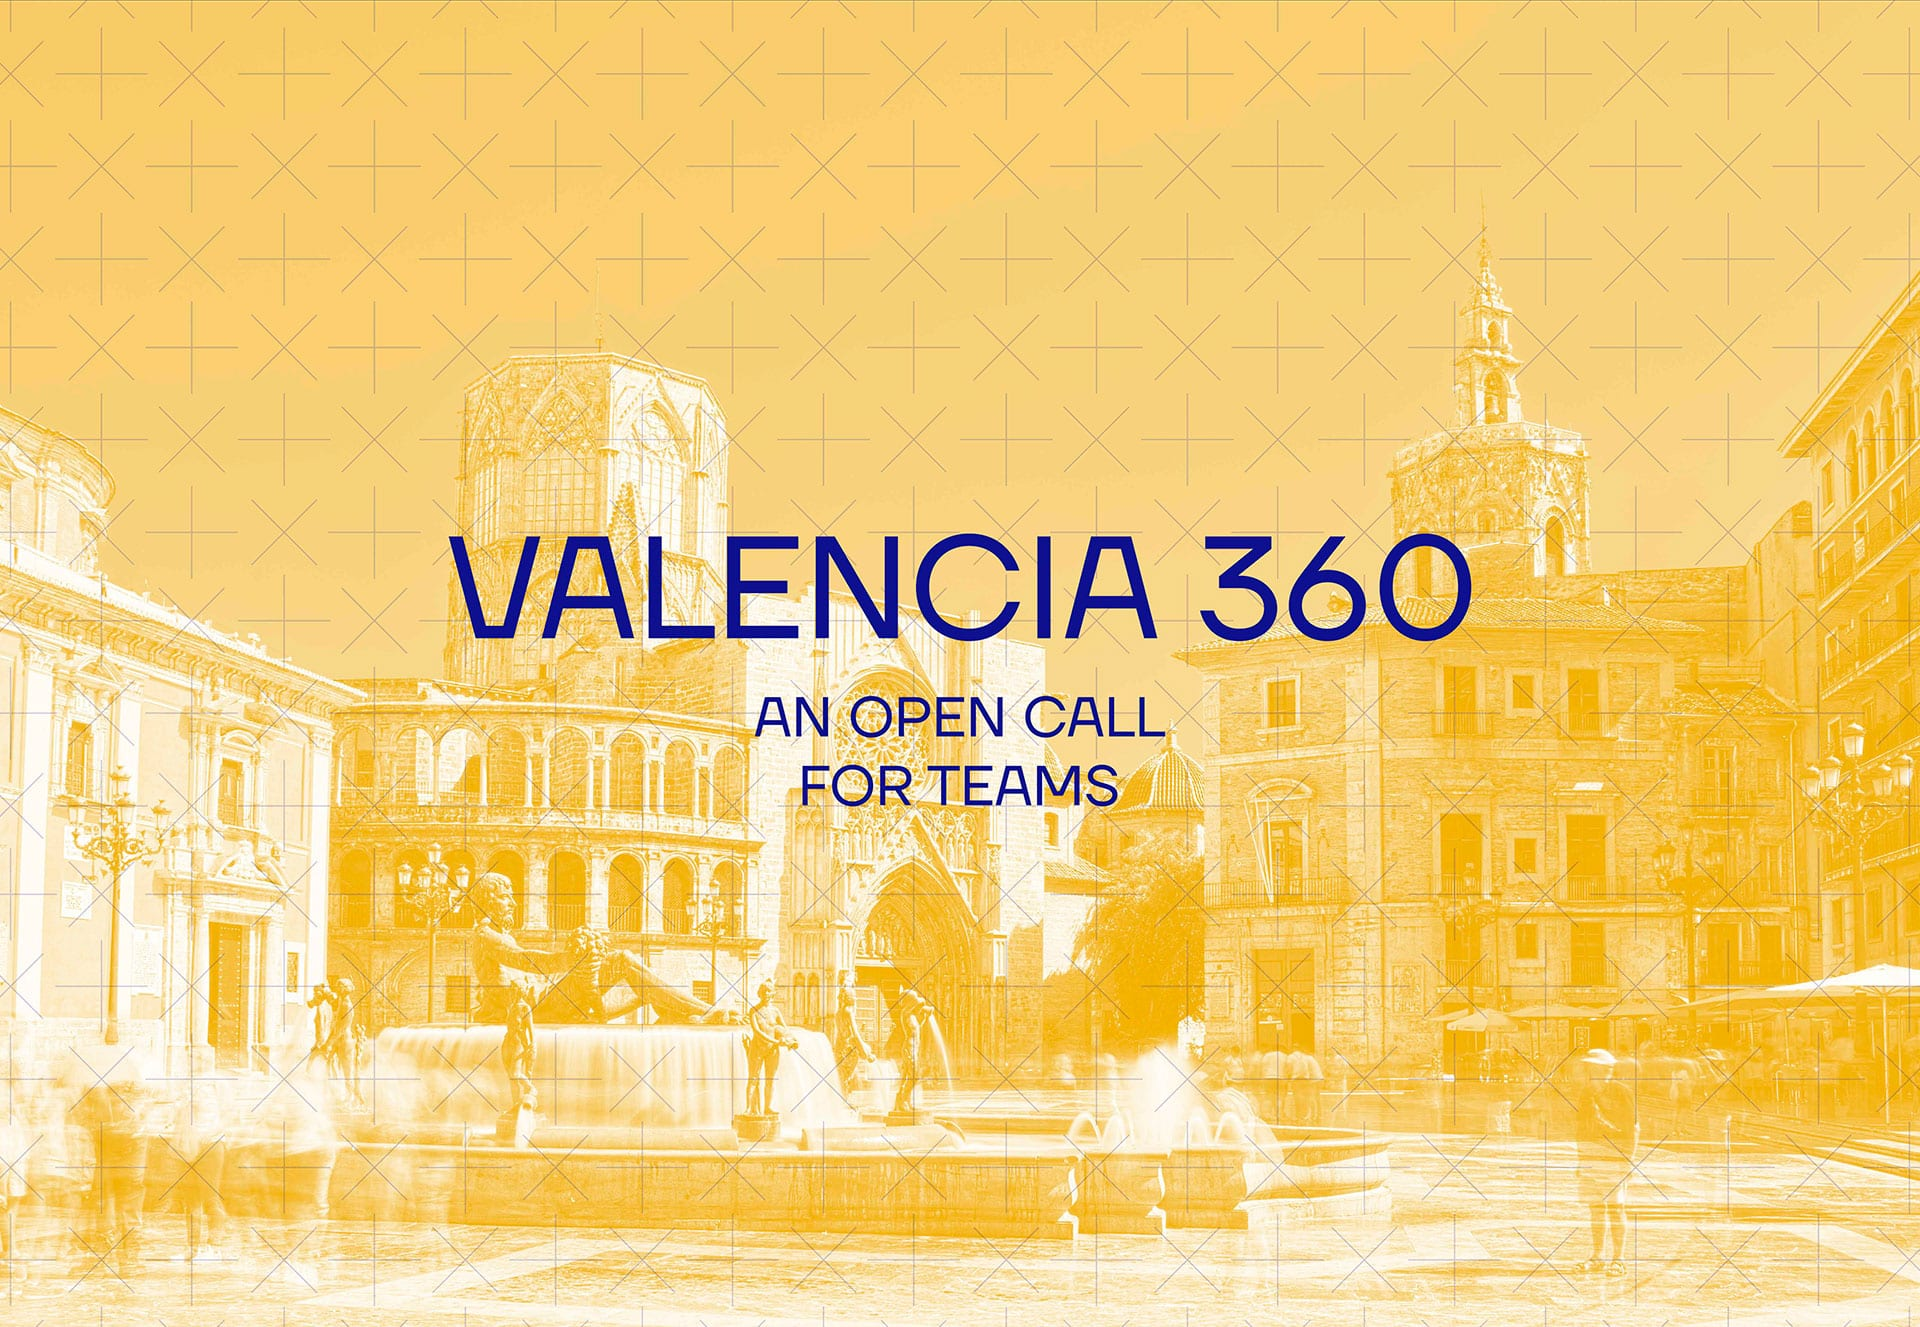 Valencia 360. A glimpse at the city of the future